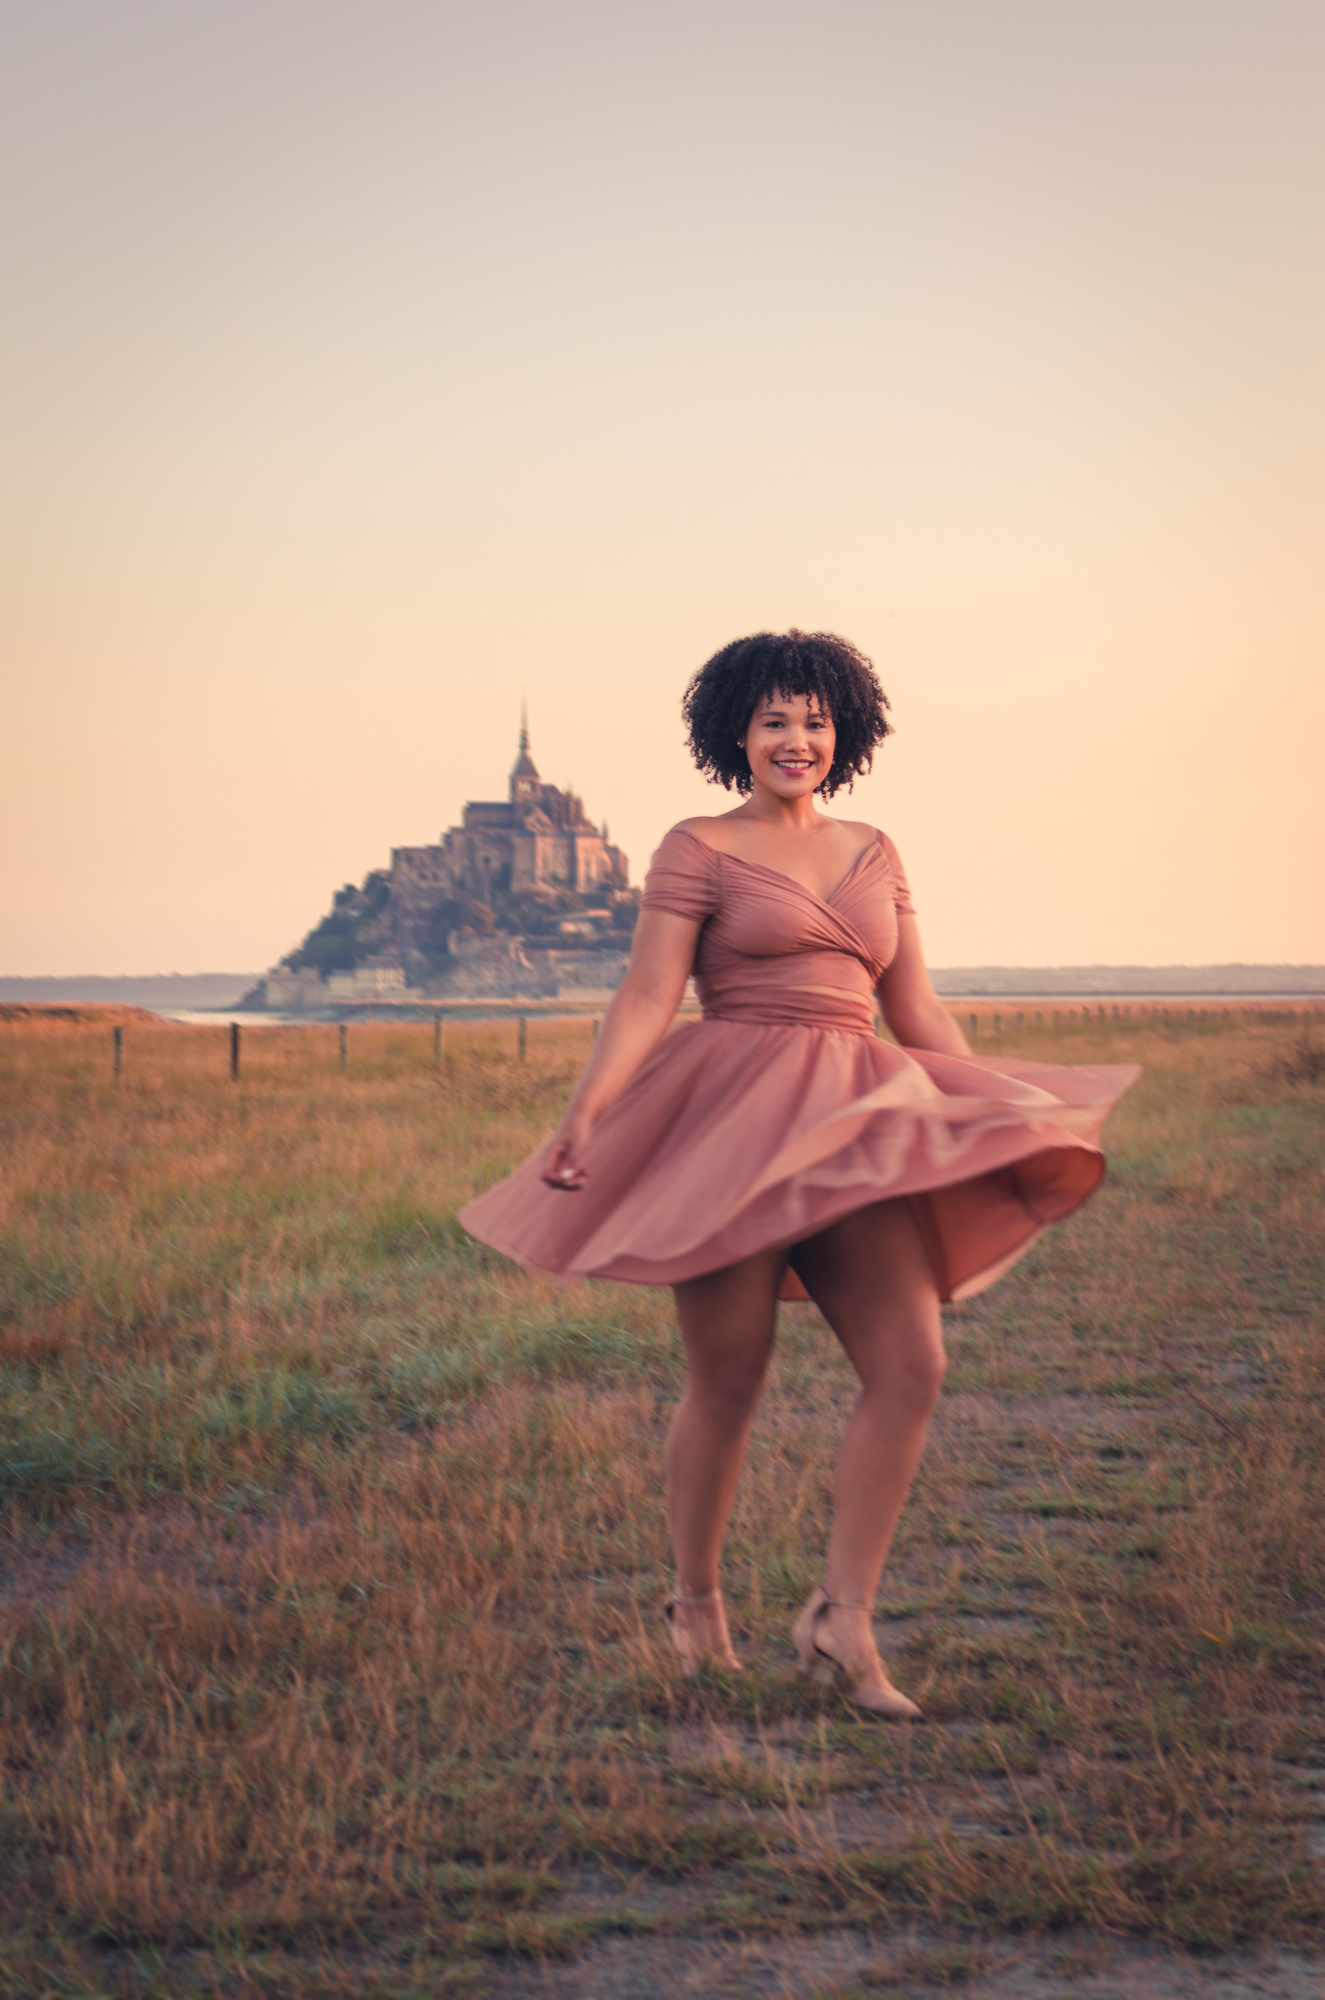 MontSaintMichel-dreamshoot-portrait-playful-lady-afro-ckayee